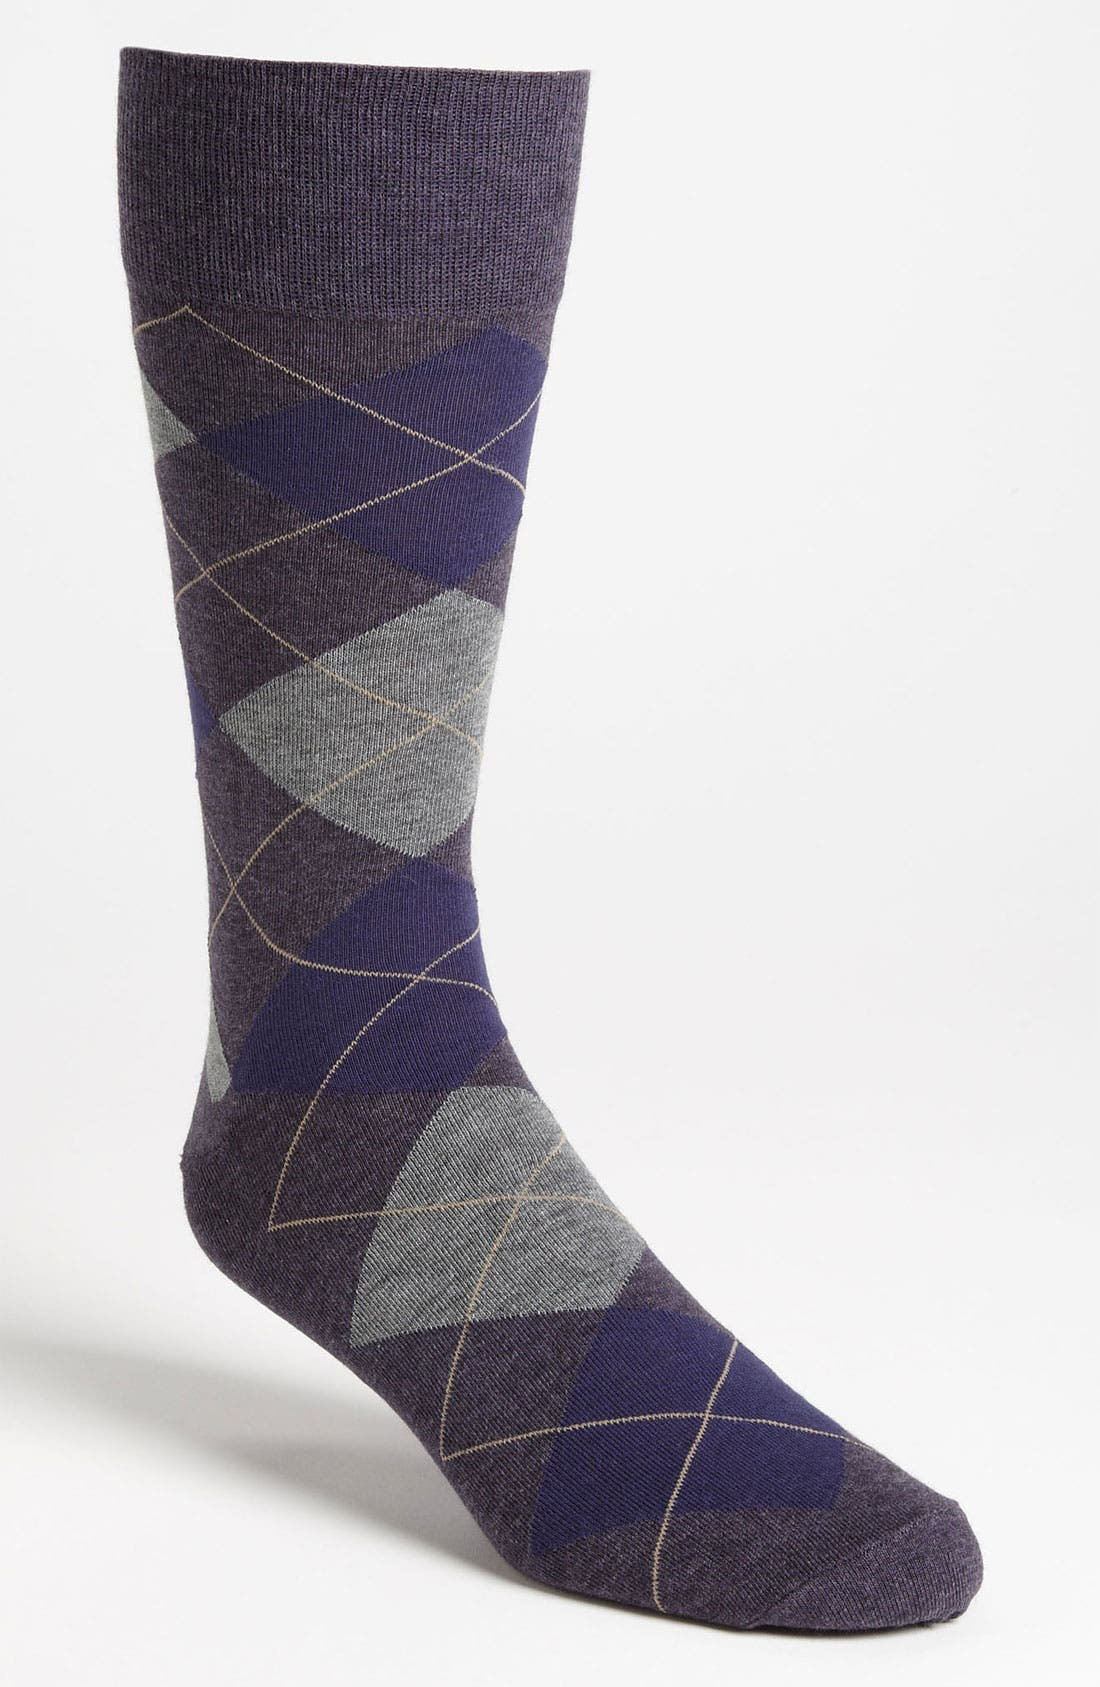 Main Image - Cole Haan 'Fashion Argyle' Socks